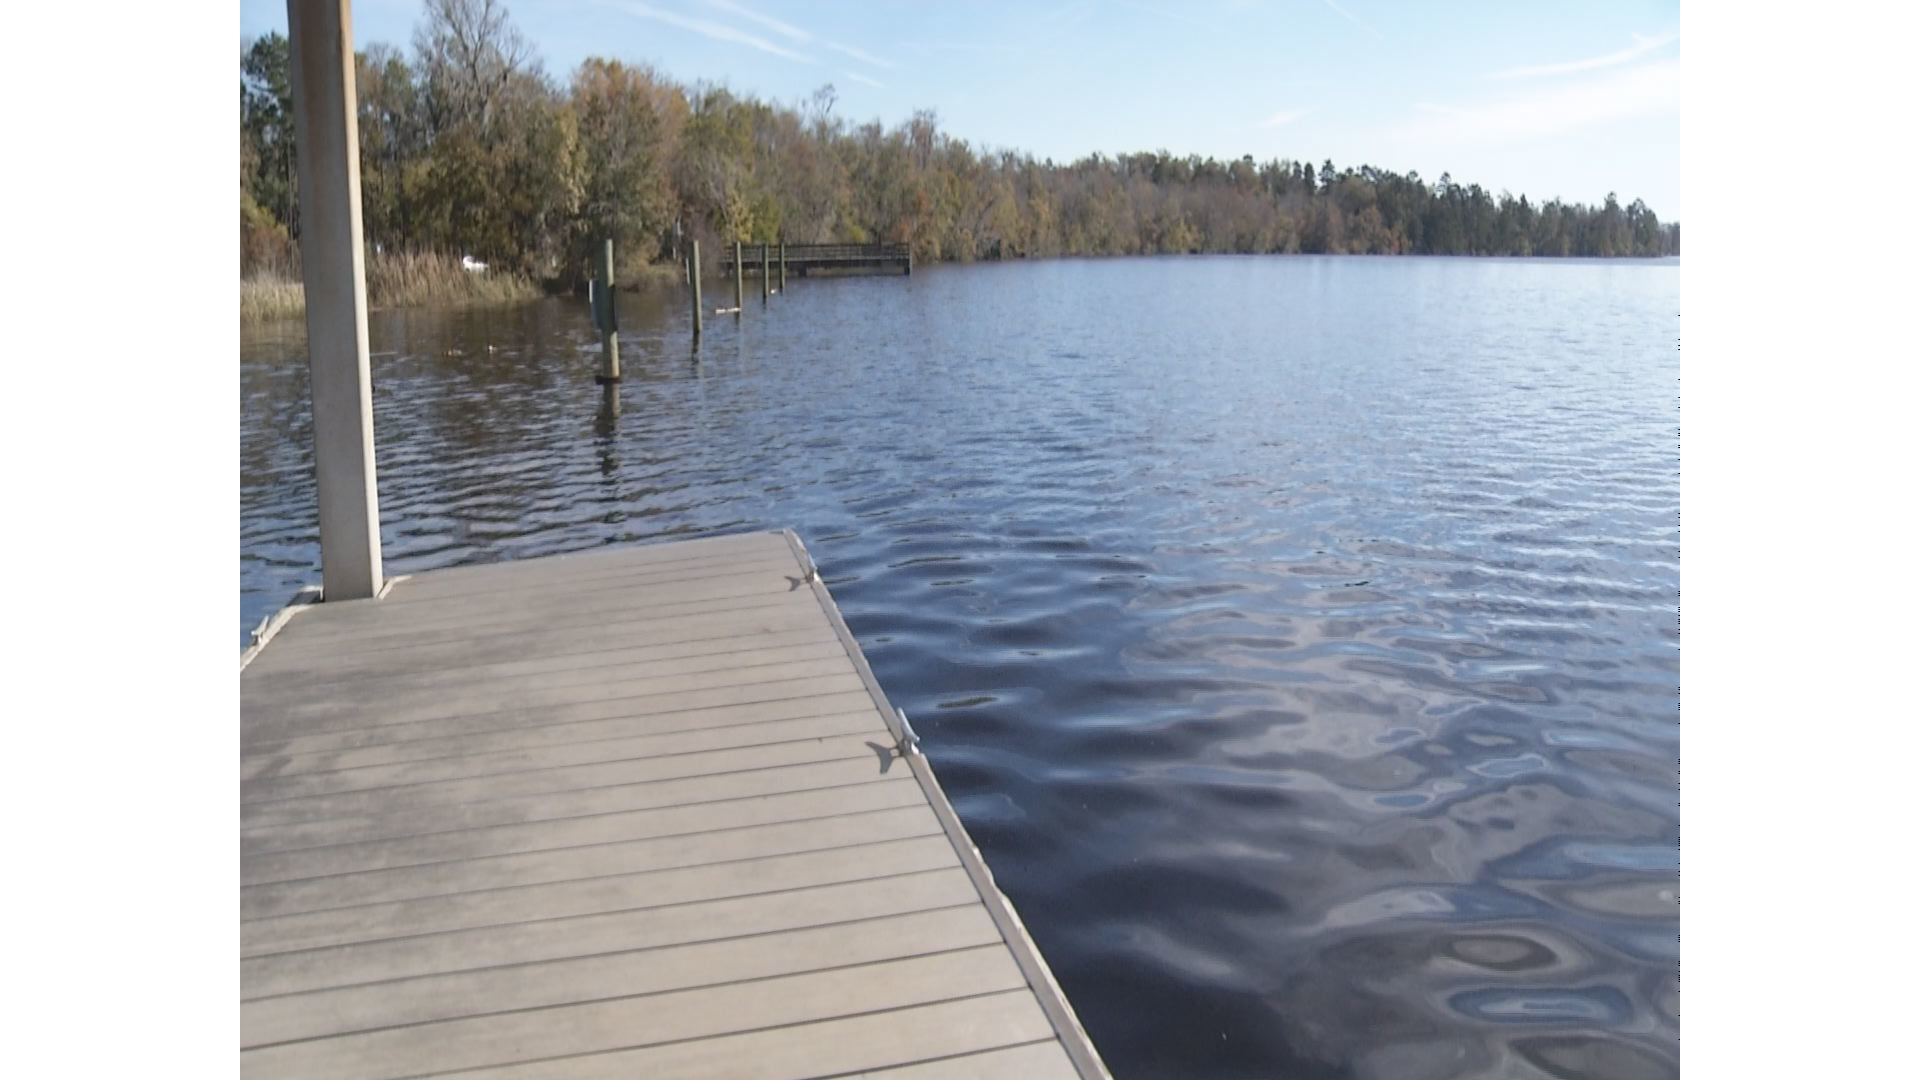 Changes in Clean Water Act